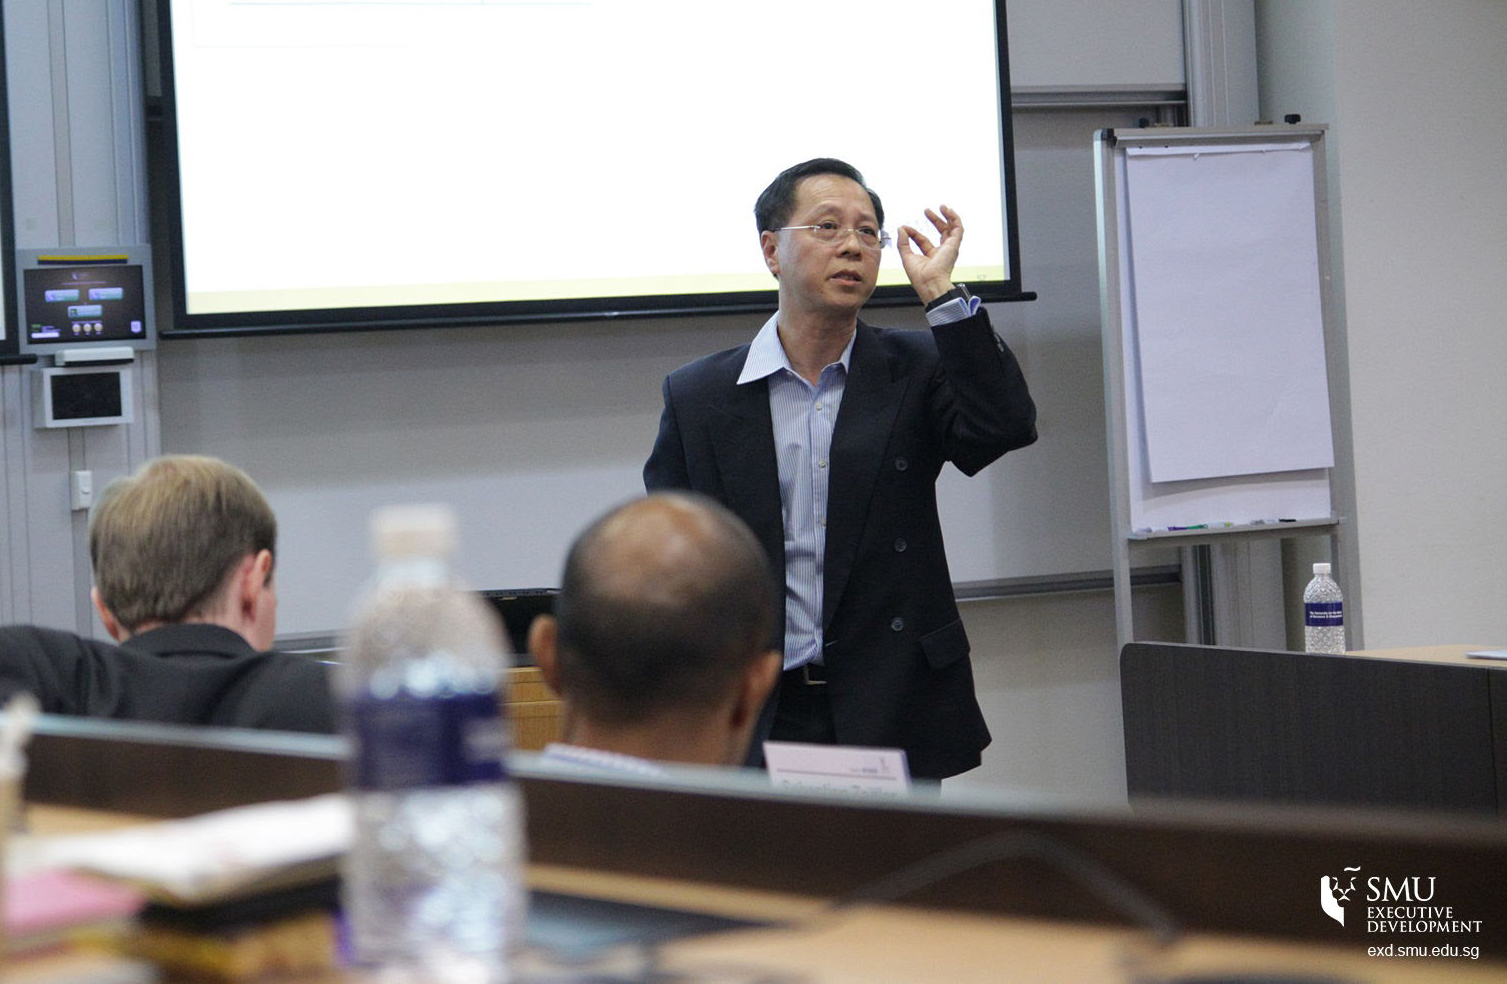 """Mr Patrick Thng spoke at SMU's Future Ready Forum 2016 on """"Digital Disruption: What, Why and How for the C-level Executives""""."""